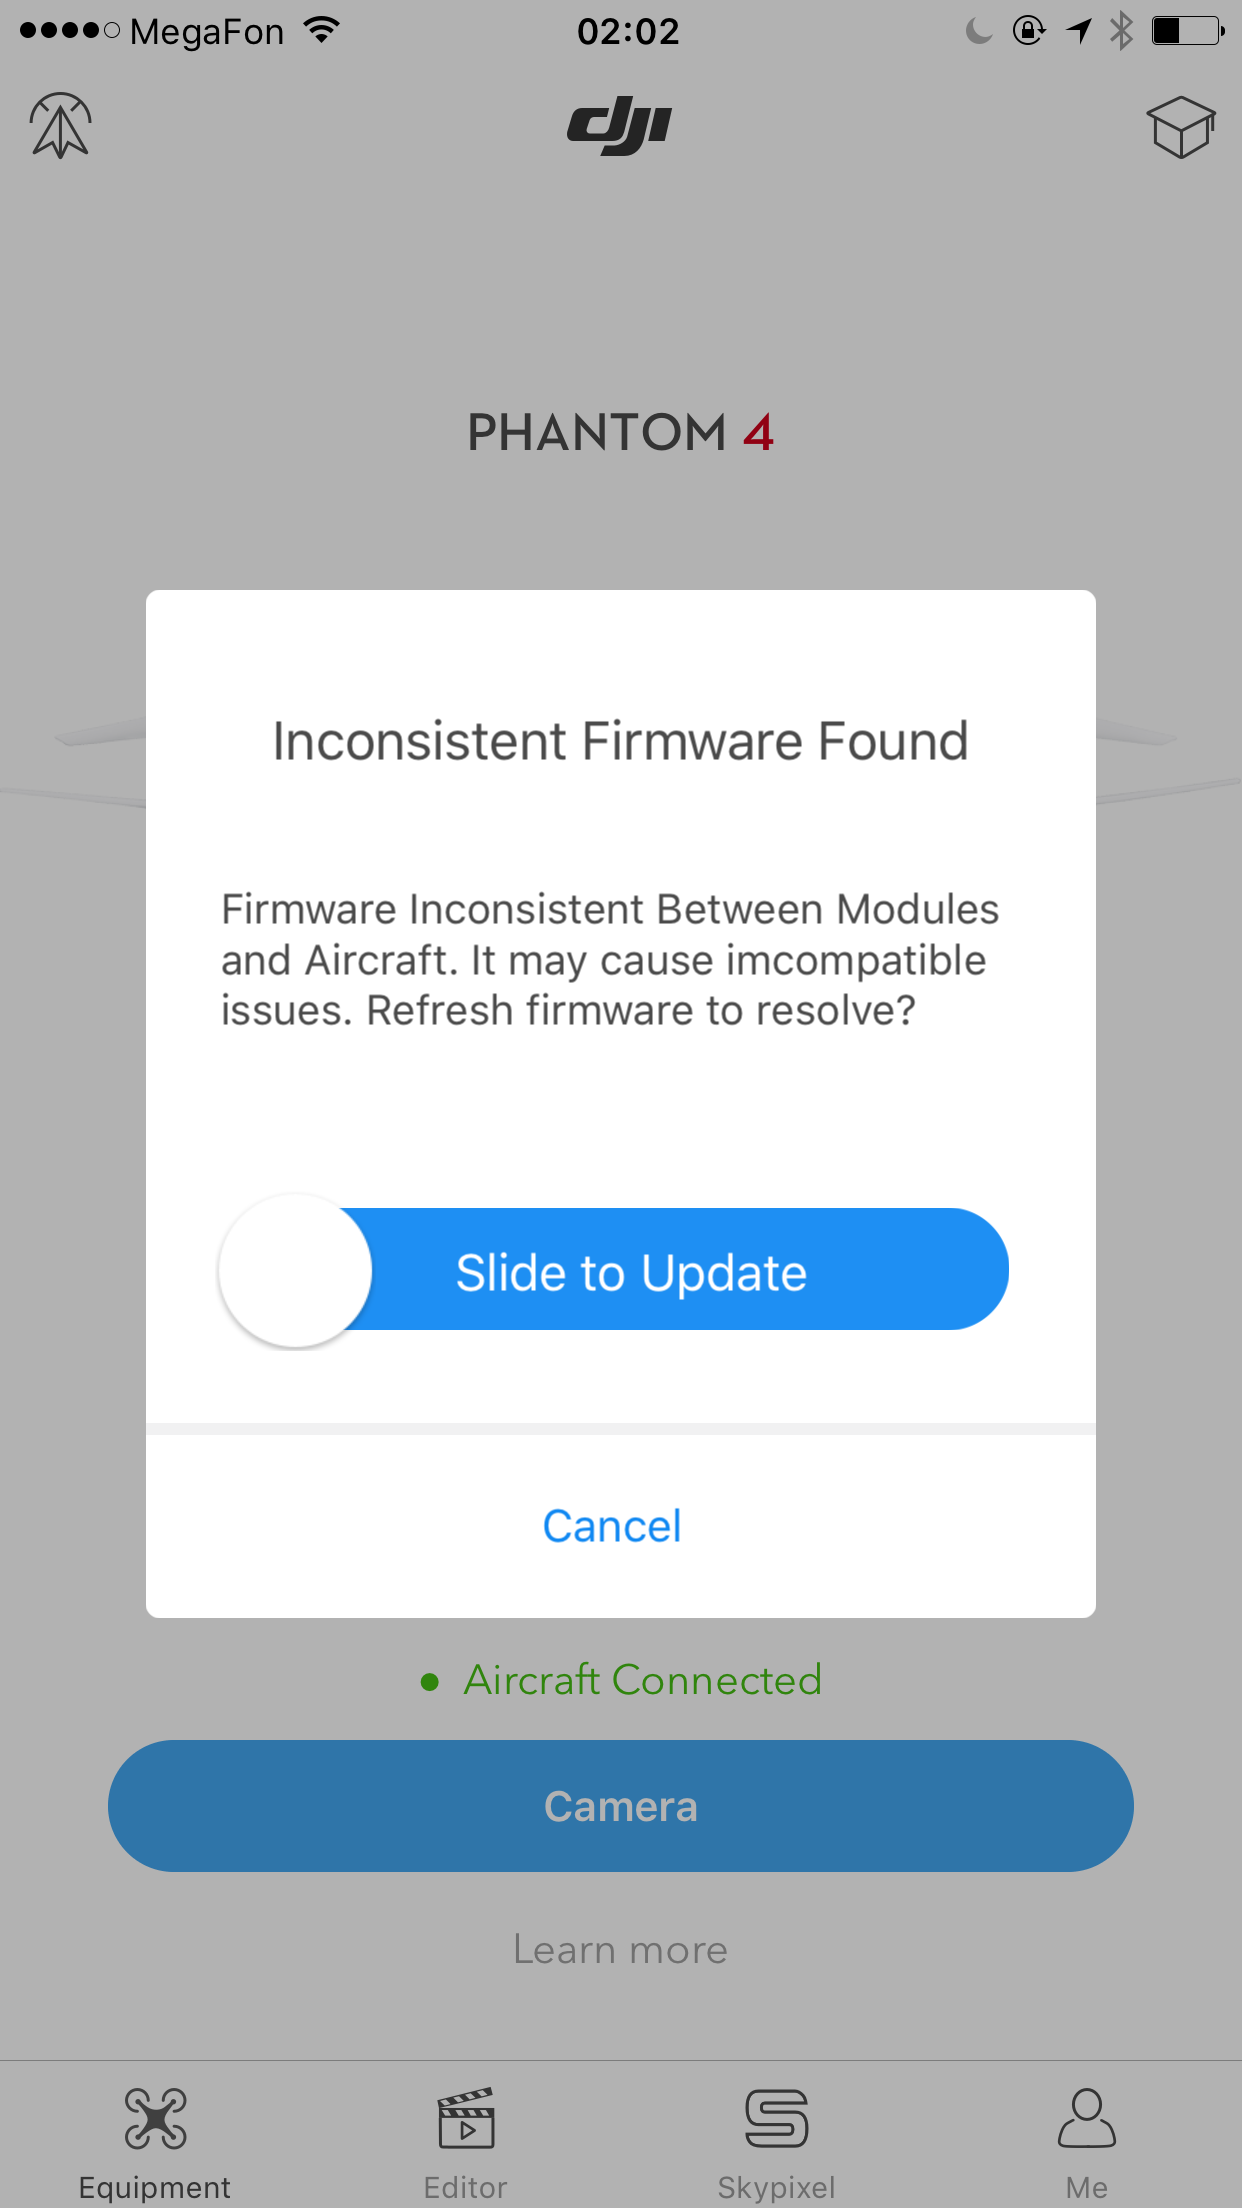 dji phantom 4 how to update firmware without assistant